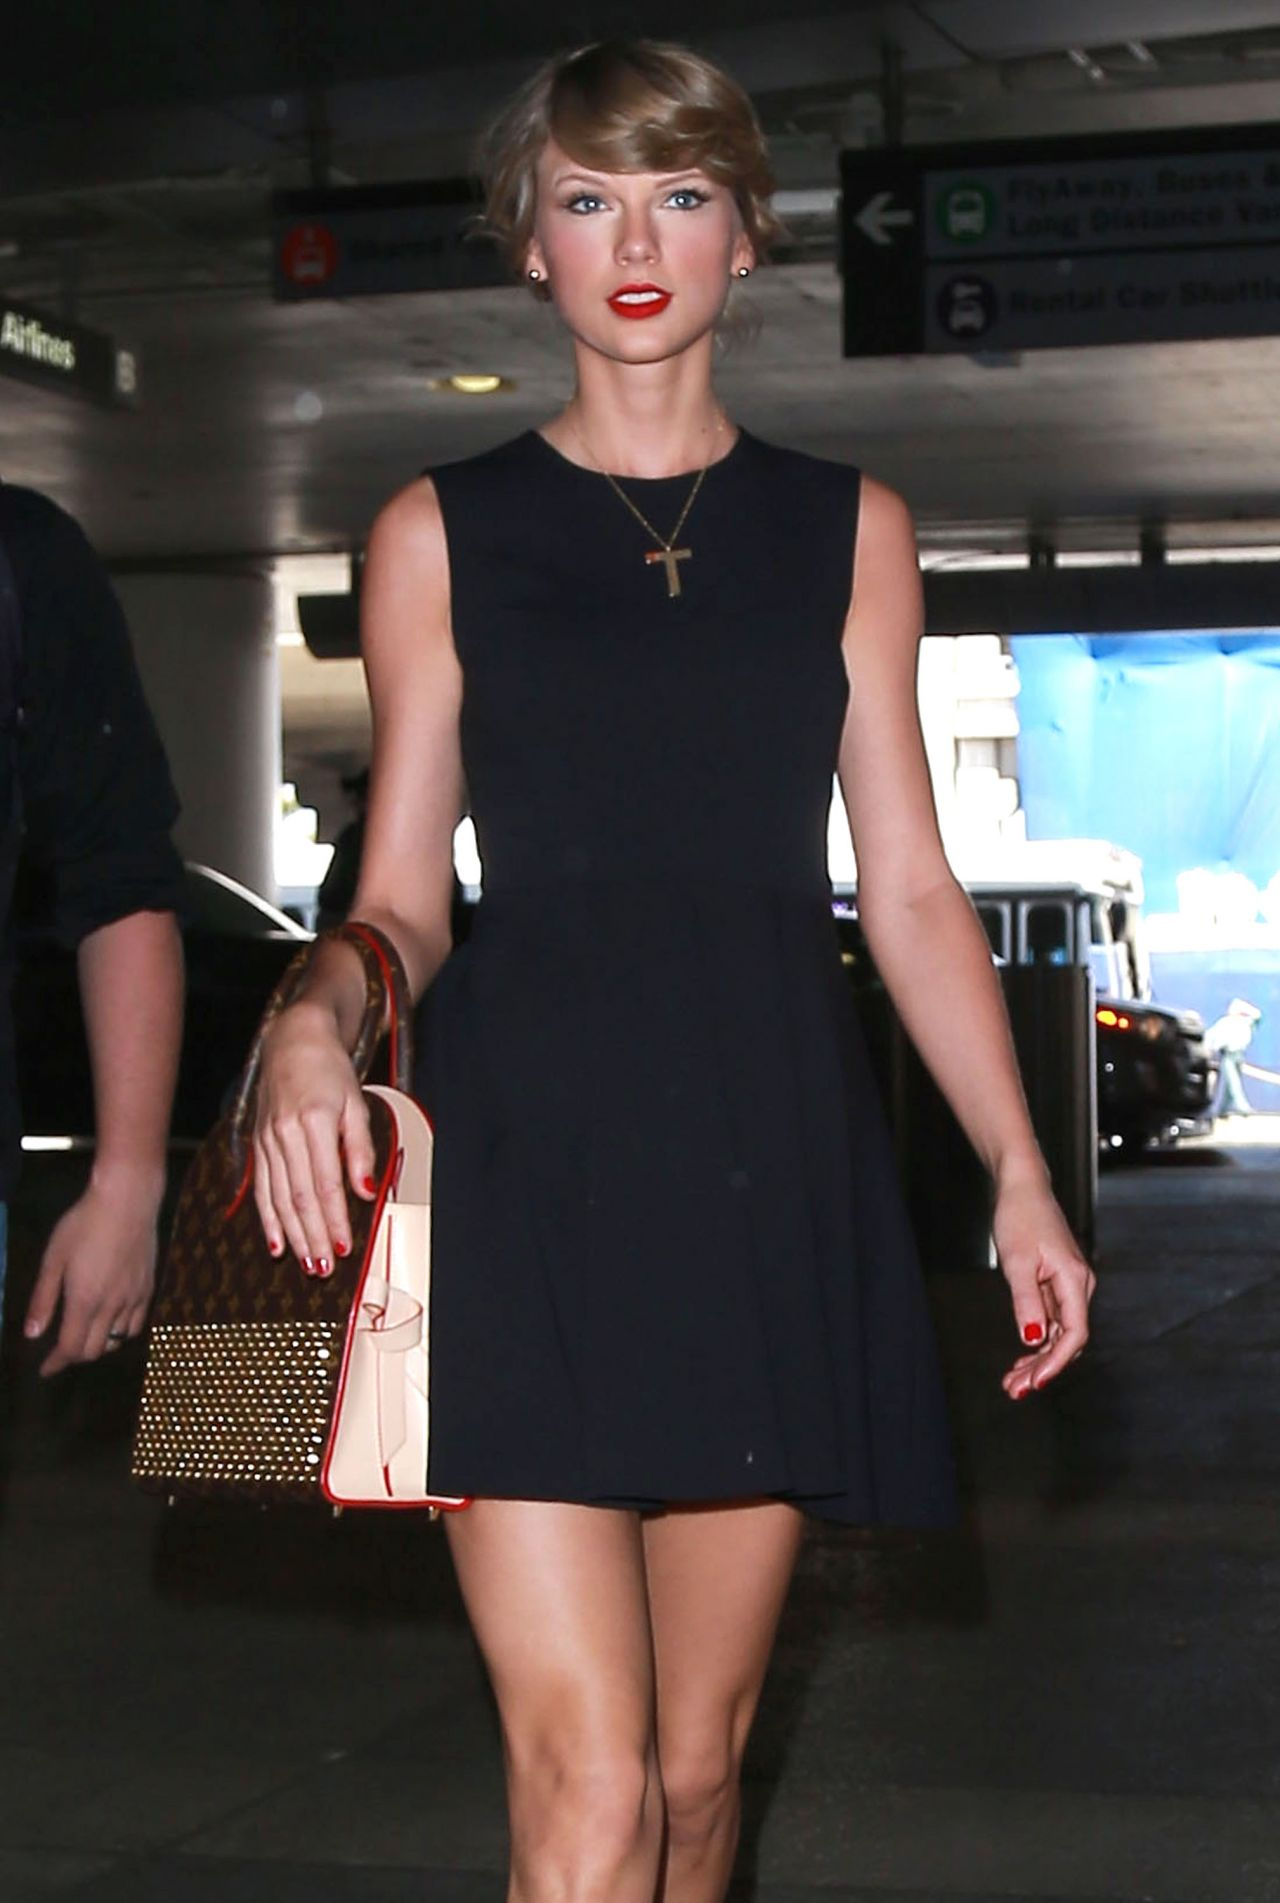 taylor swift in black mini dress